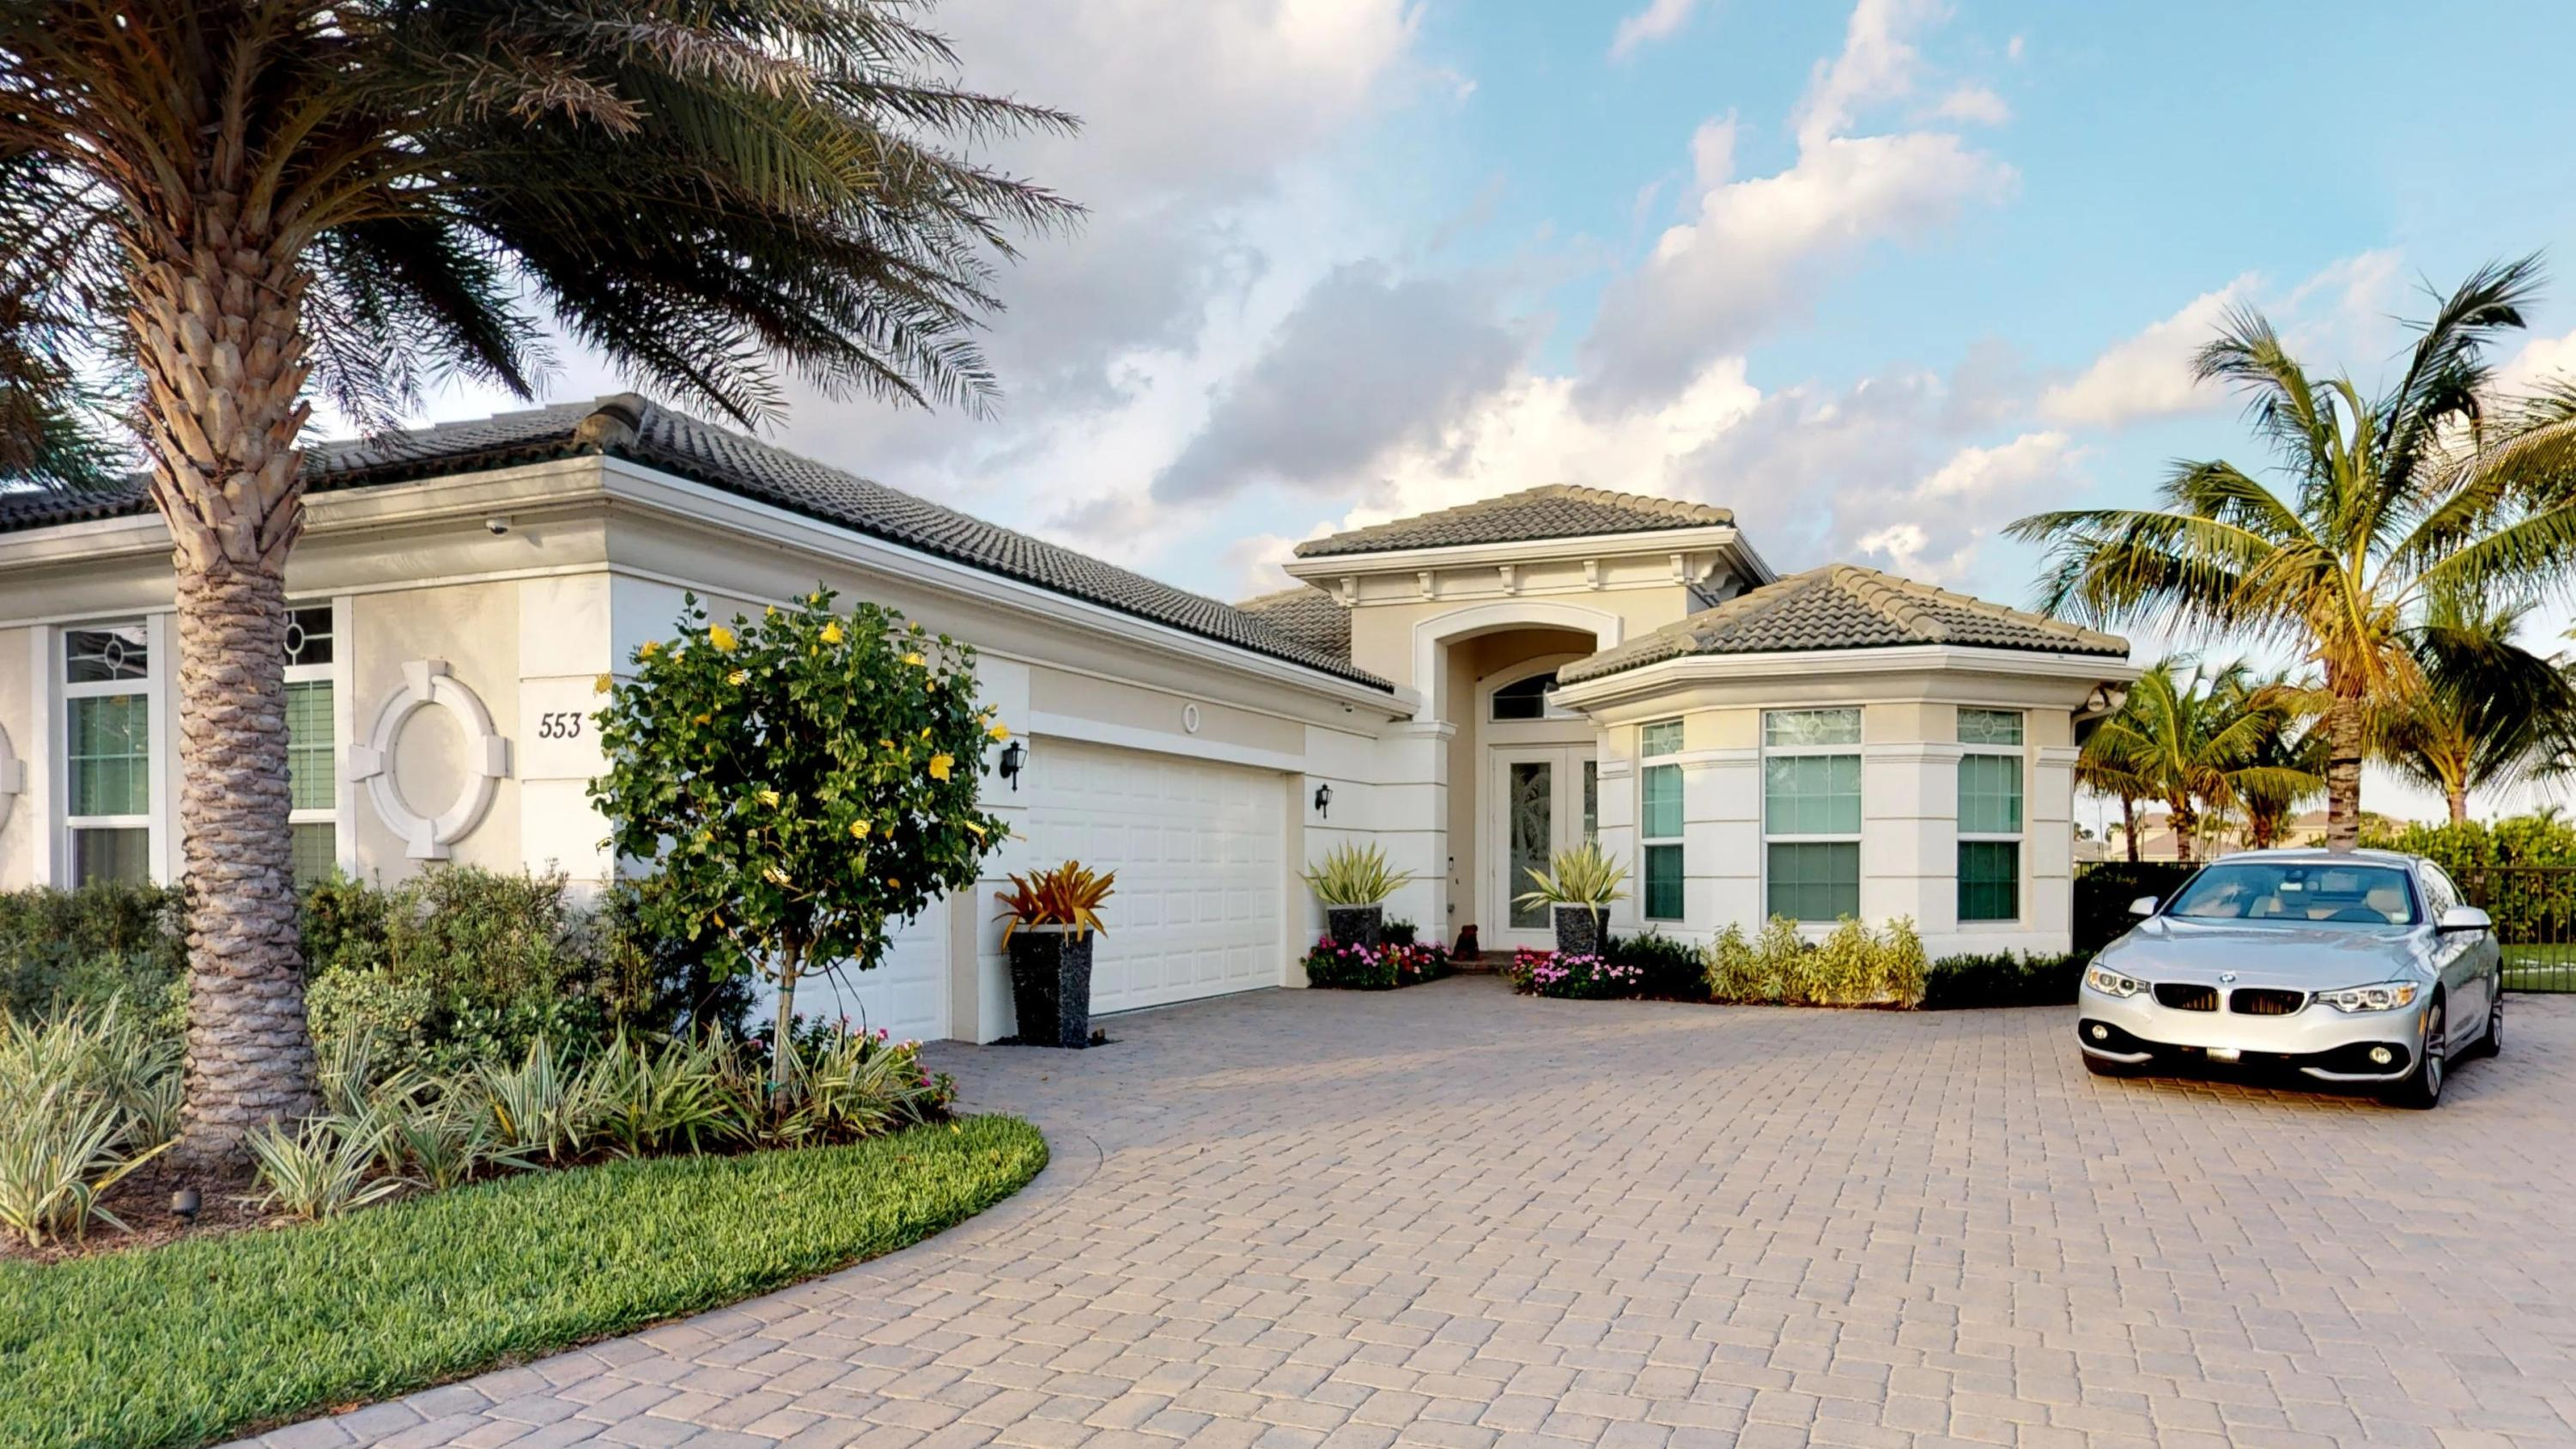 New Home for sale at 553 Carrara Court in Jupiter